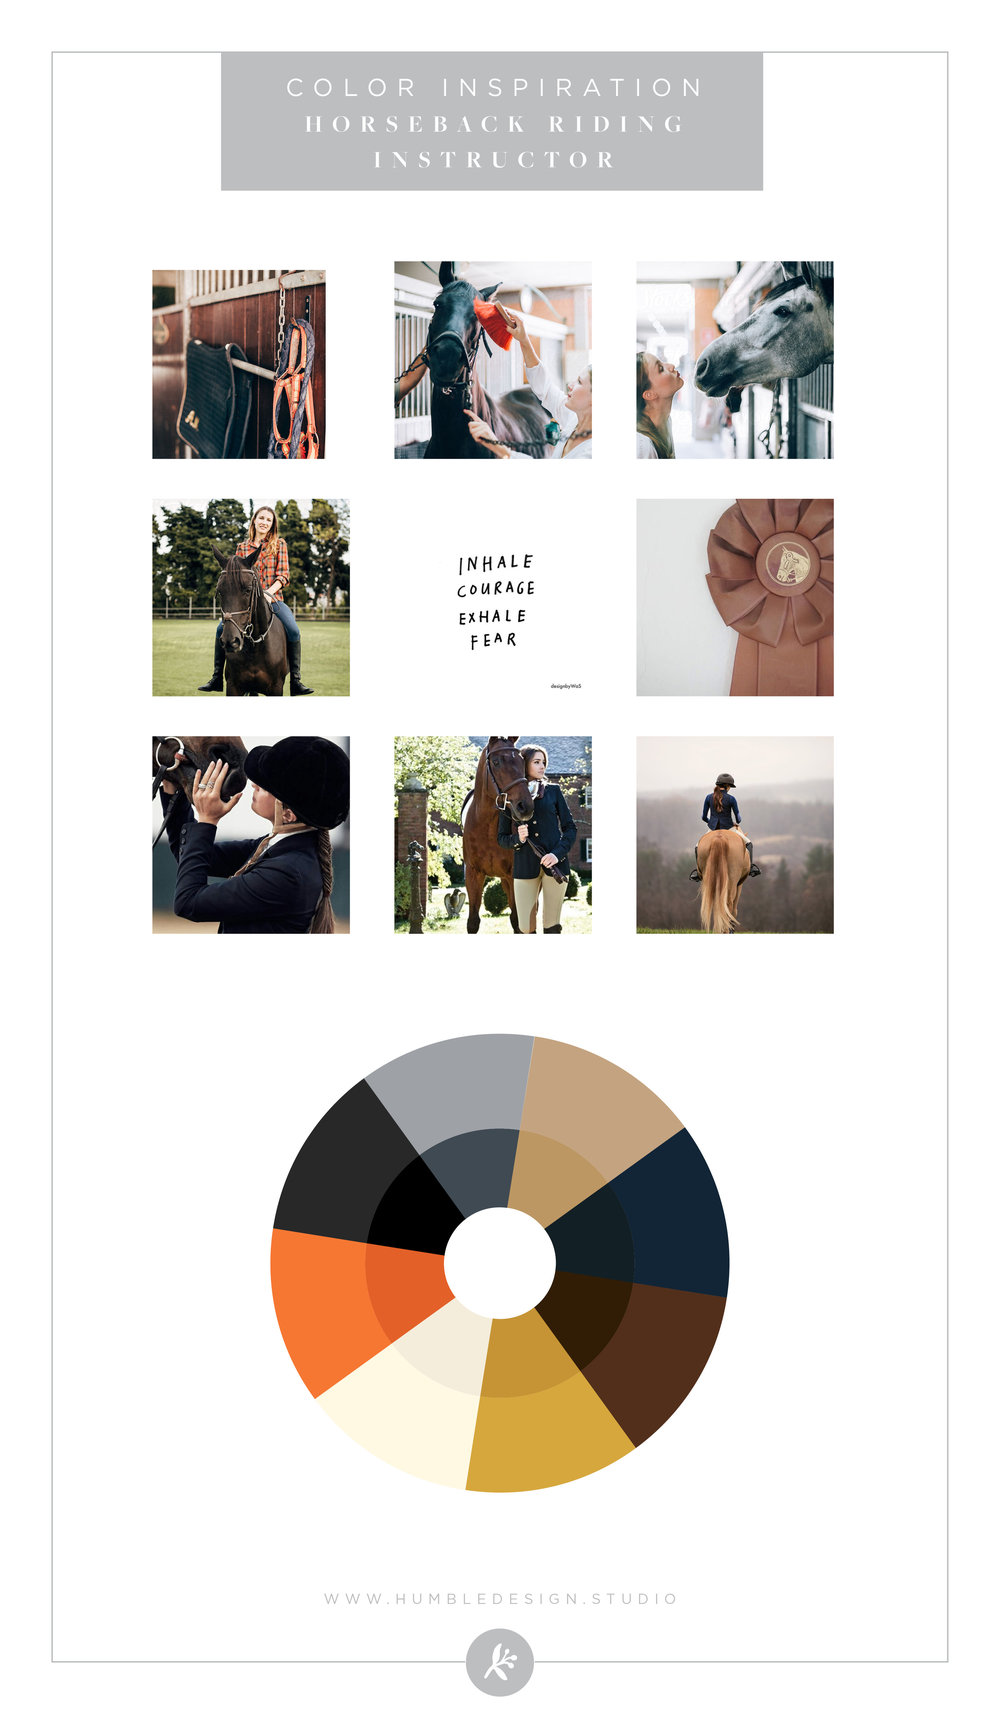 Horseback Riding Instructor Color Palette.jpg